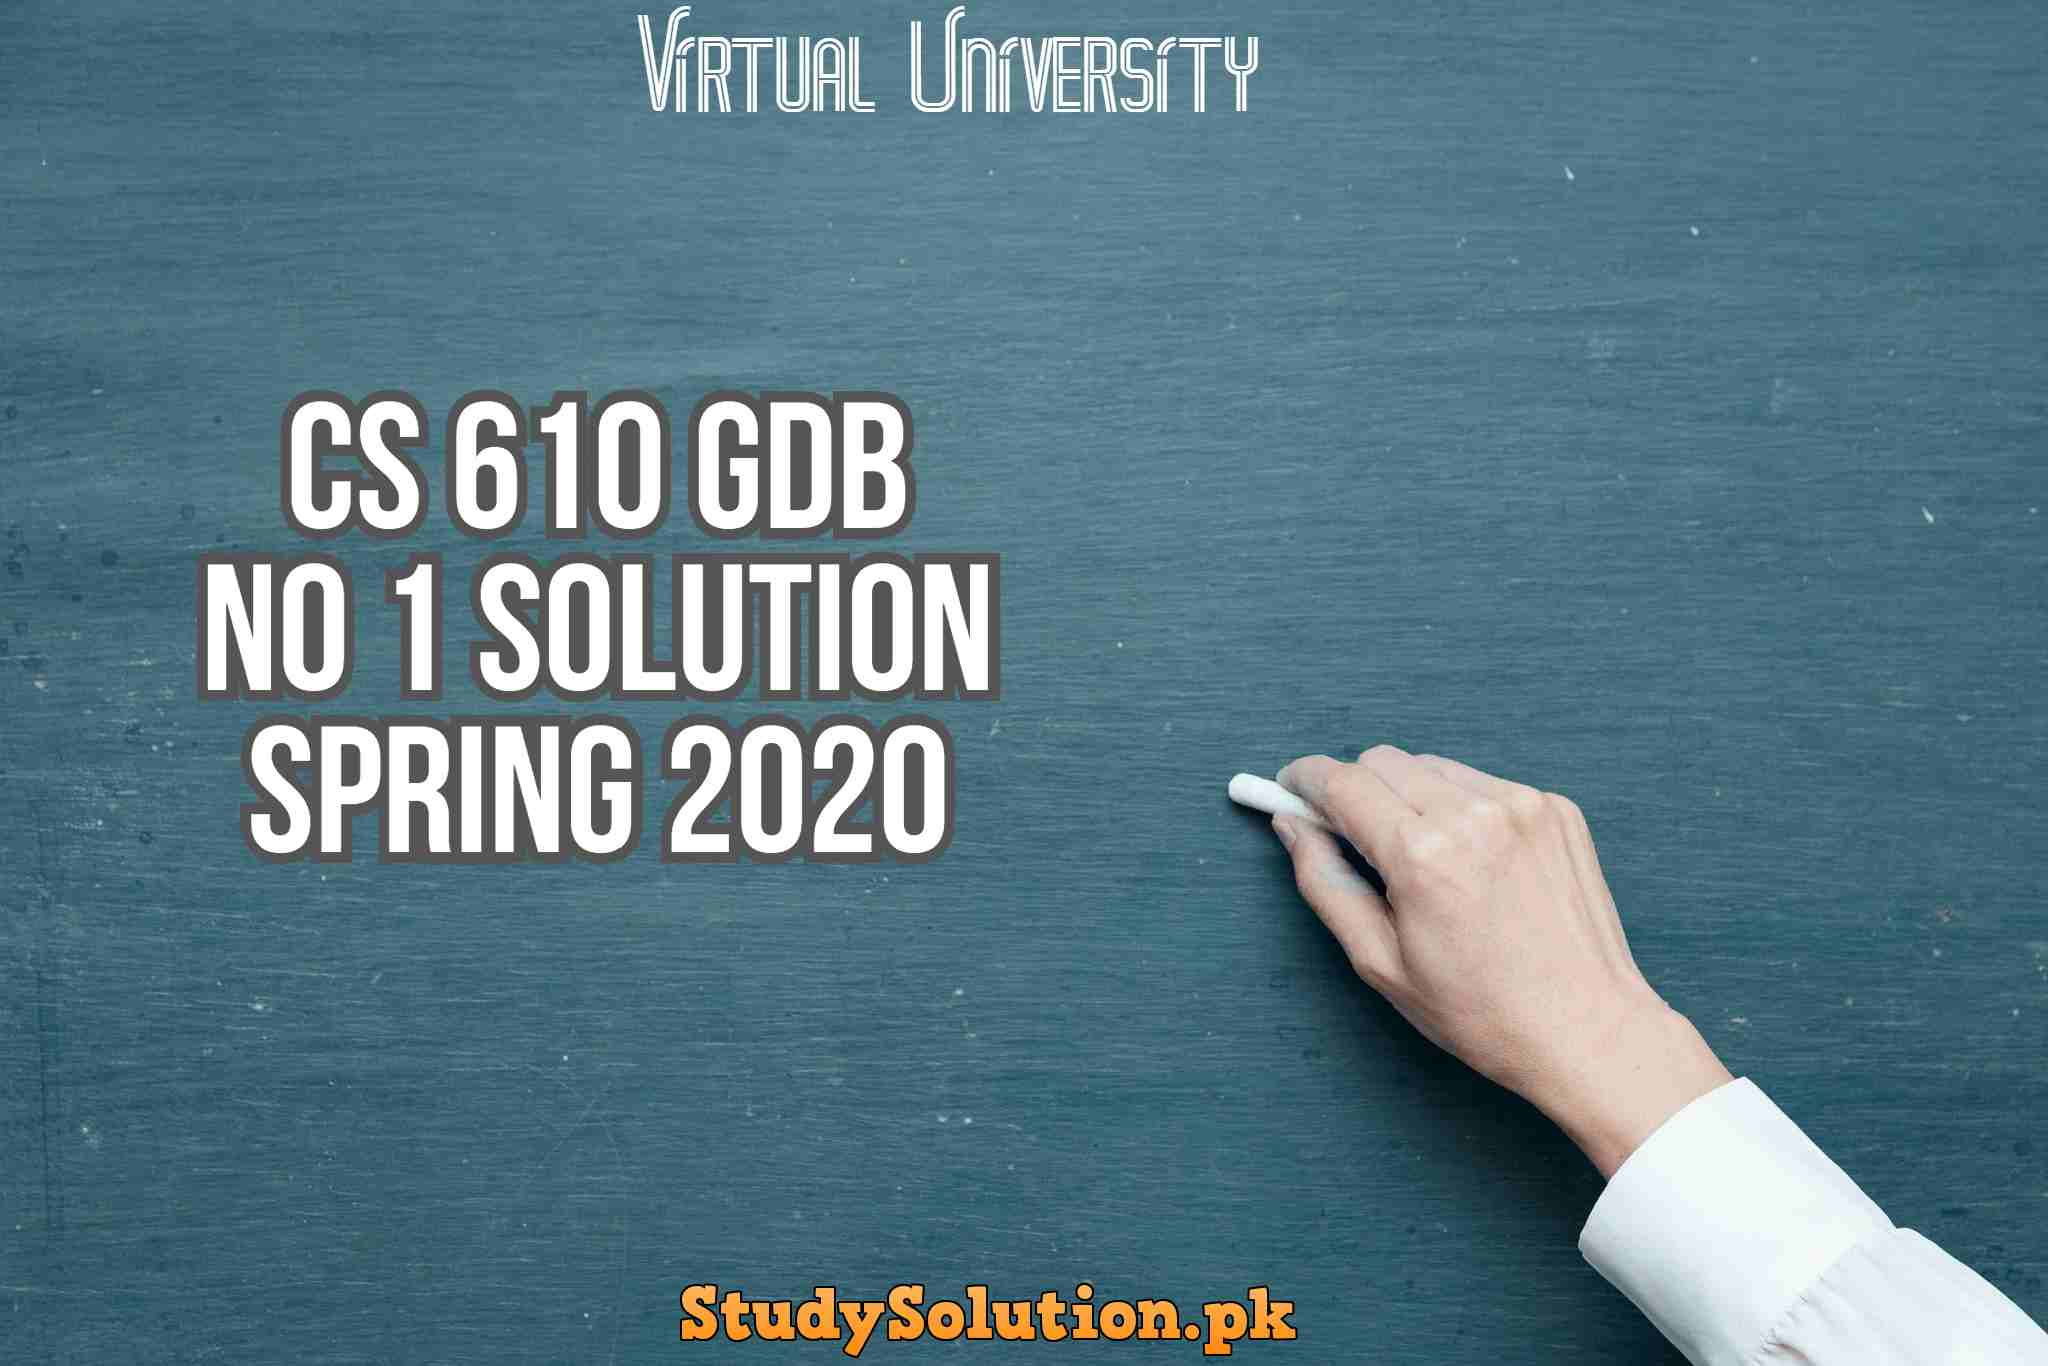 CS 610 GDB No 1 Solution Spring 2020